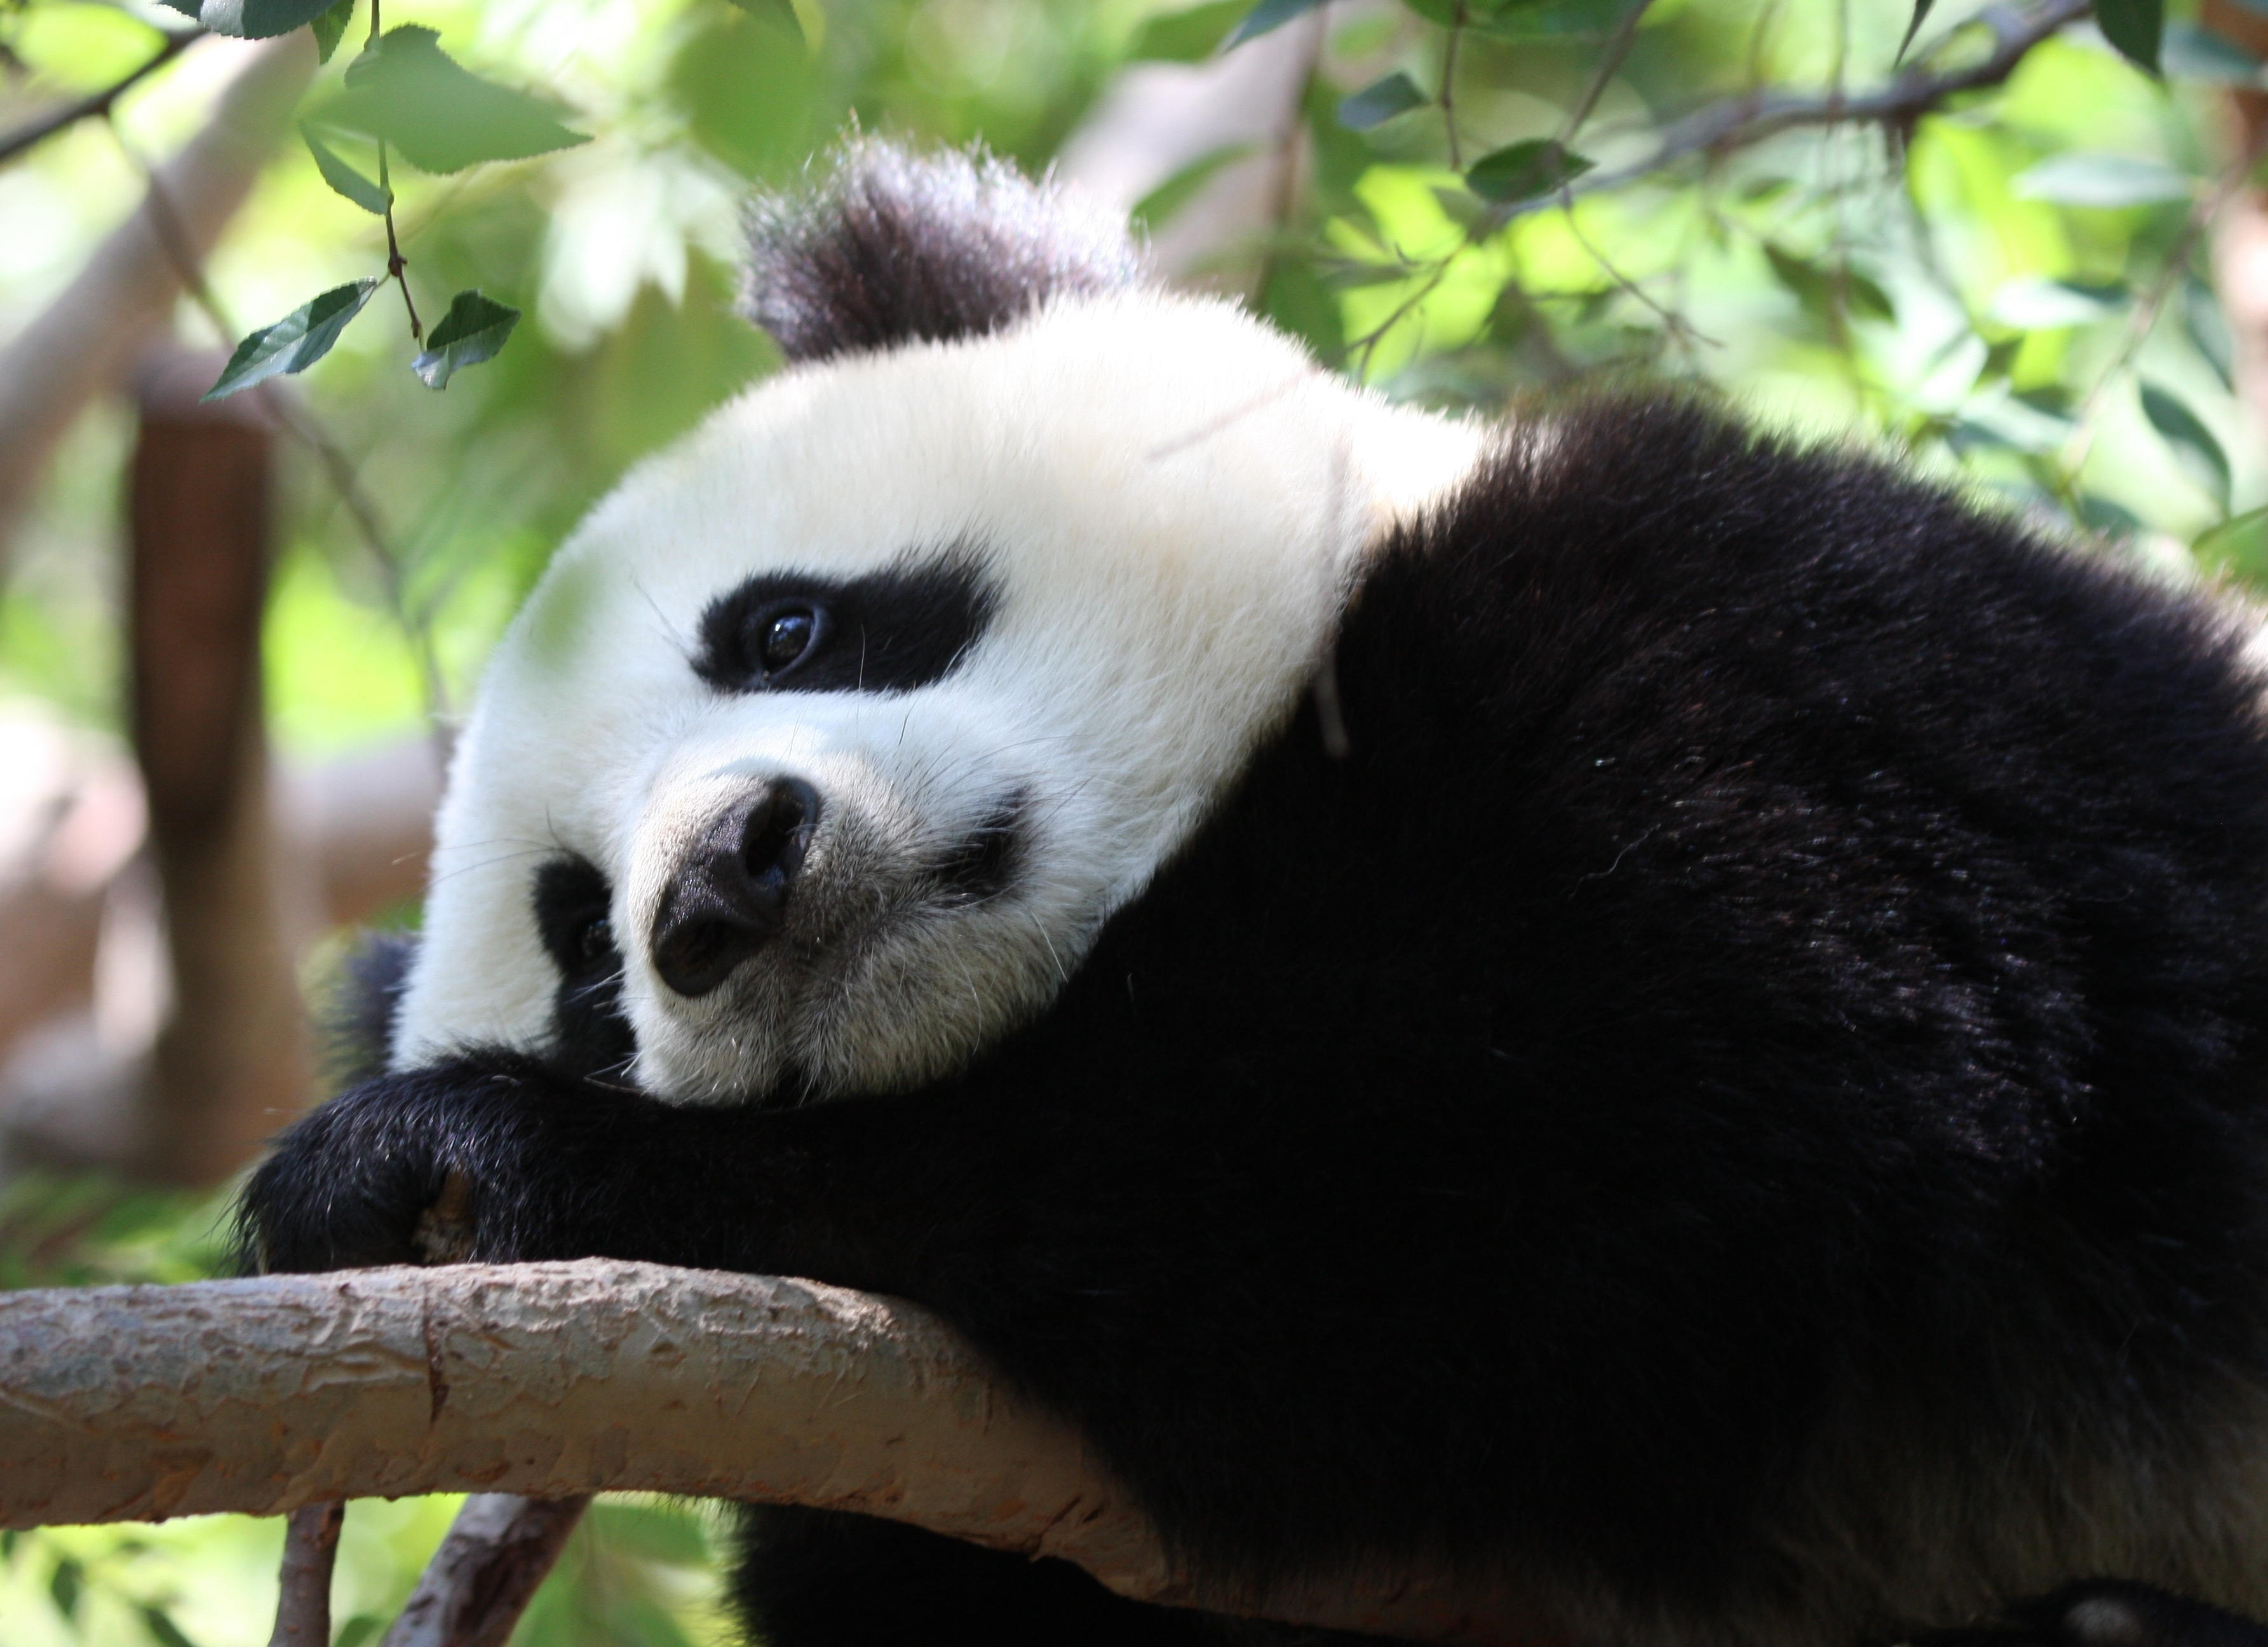 78276 download wallpaper Animals, Panda, Stains, Spots, Branch, Sit screensavers and pictures for free